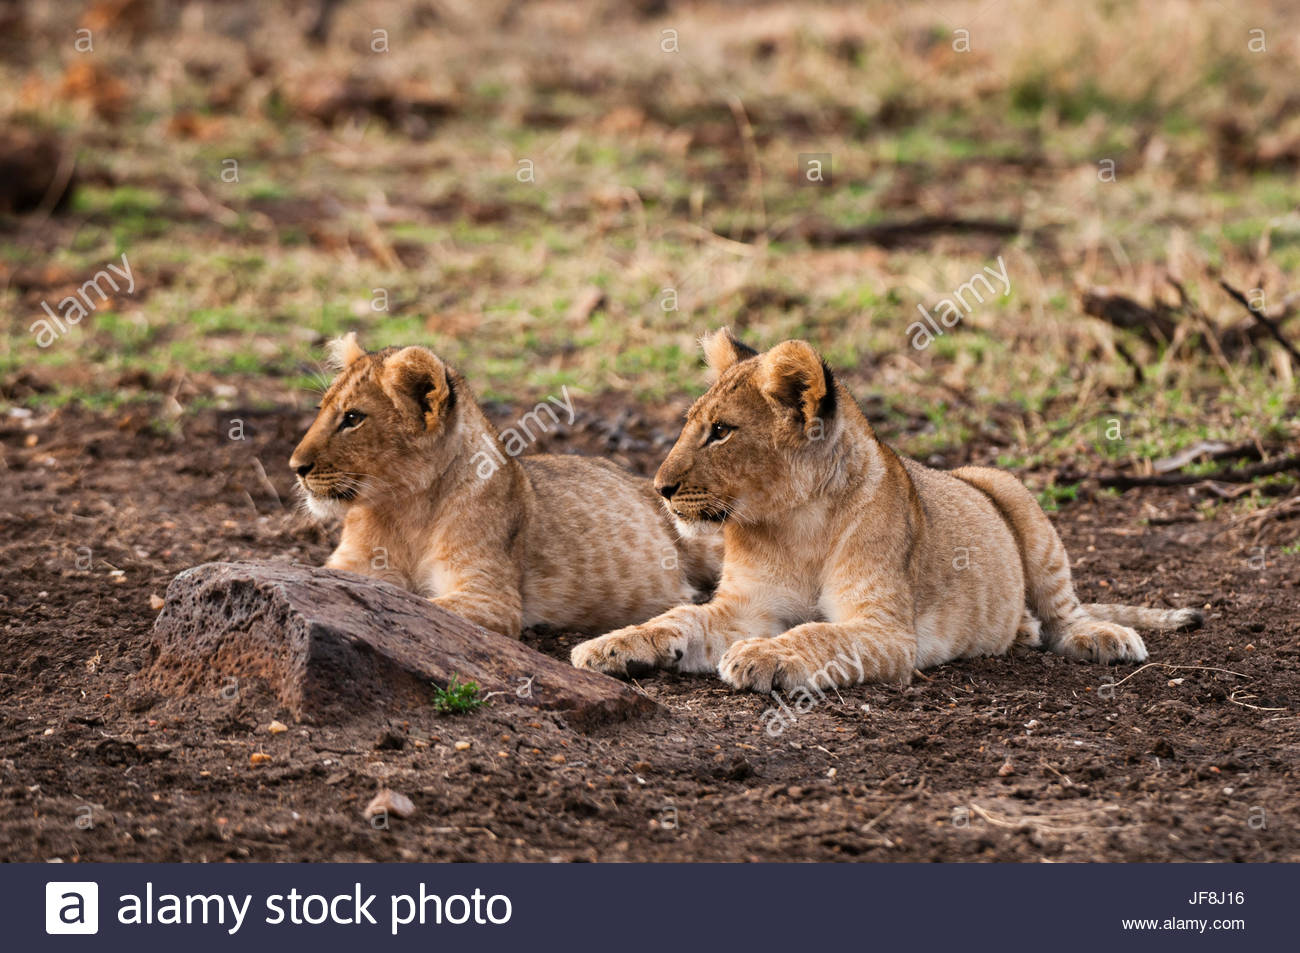 Two lion cubs, Panthera leo, resting side by side. Stock Photo